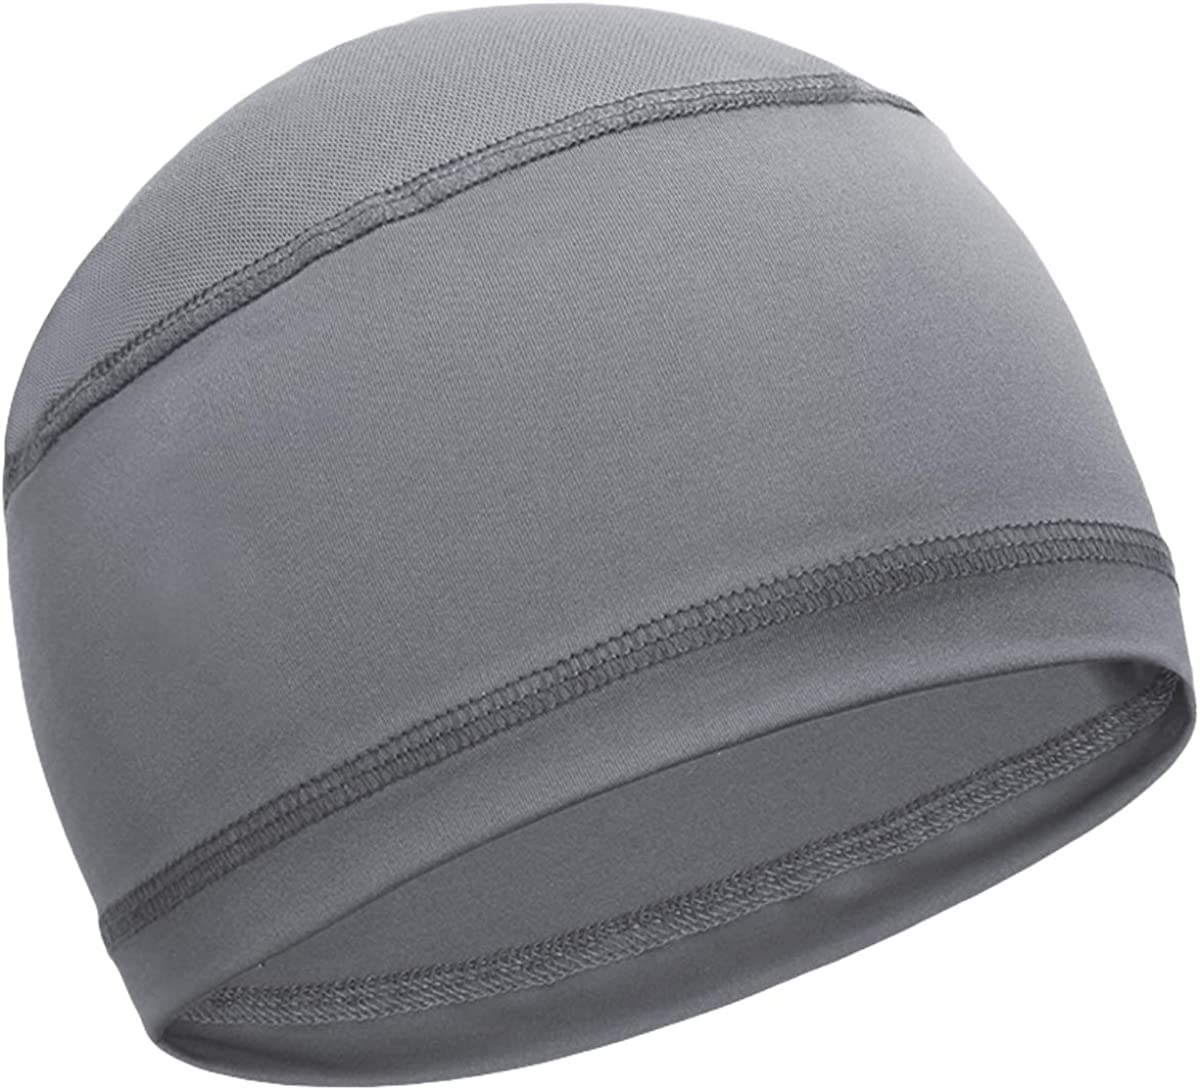 Skull Cap Helmet Liner for Men - Cooling Sweat Wicking Cycling Head Caps - Under Motorcycle & Hard Hat Liners